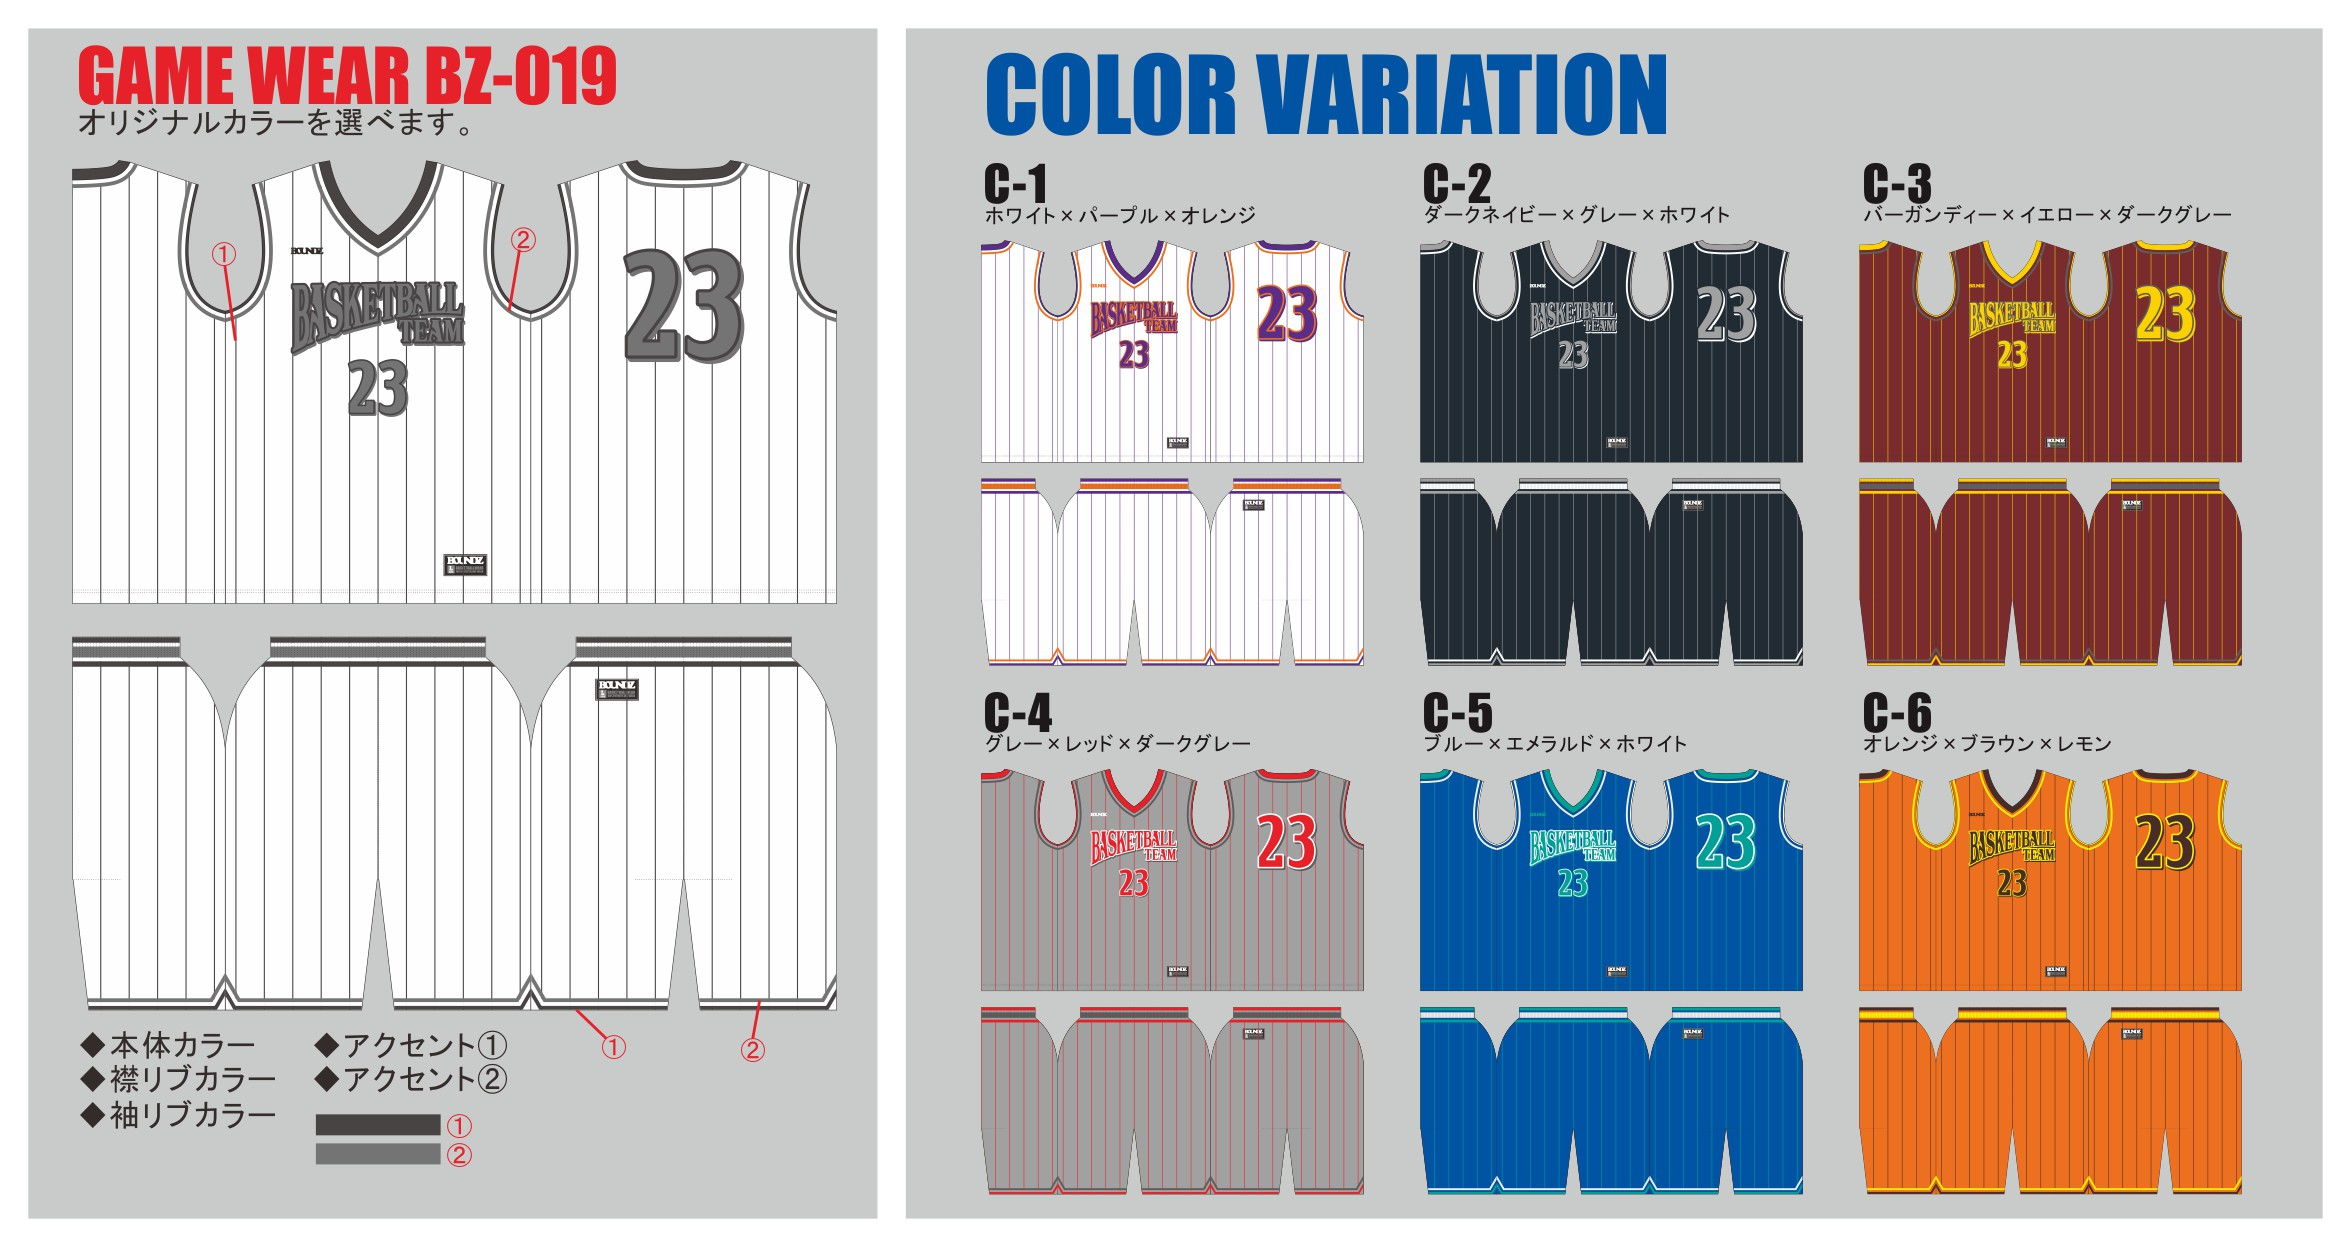 GAME_WEAR_BZ019_color